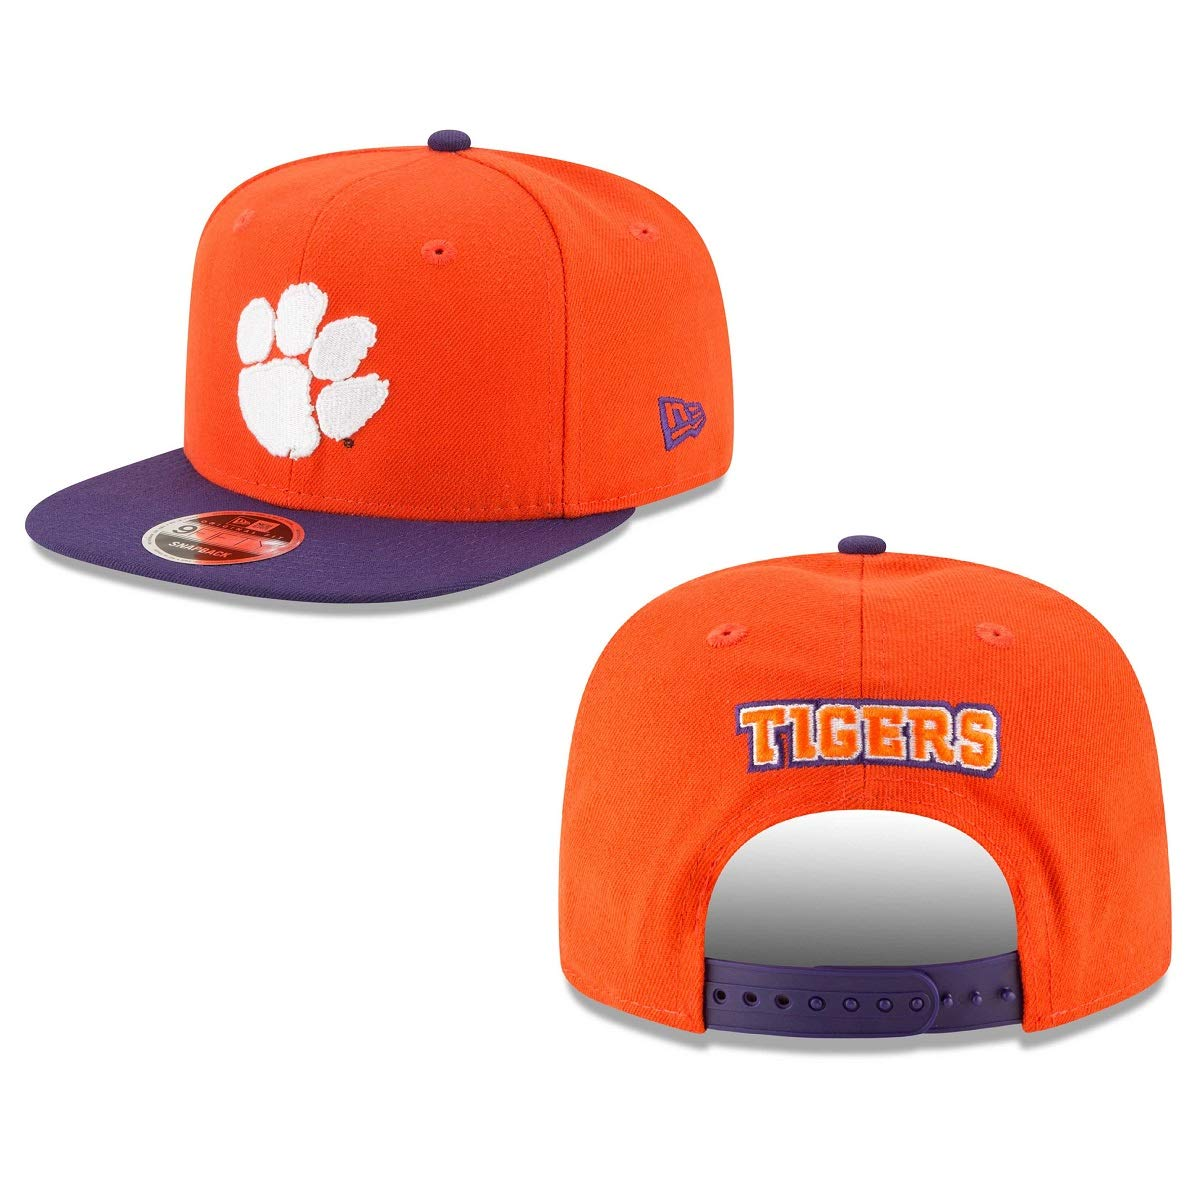 New Era Clemson Tigers Basic 9FIFTY Adjustable Hat